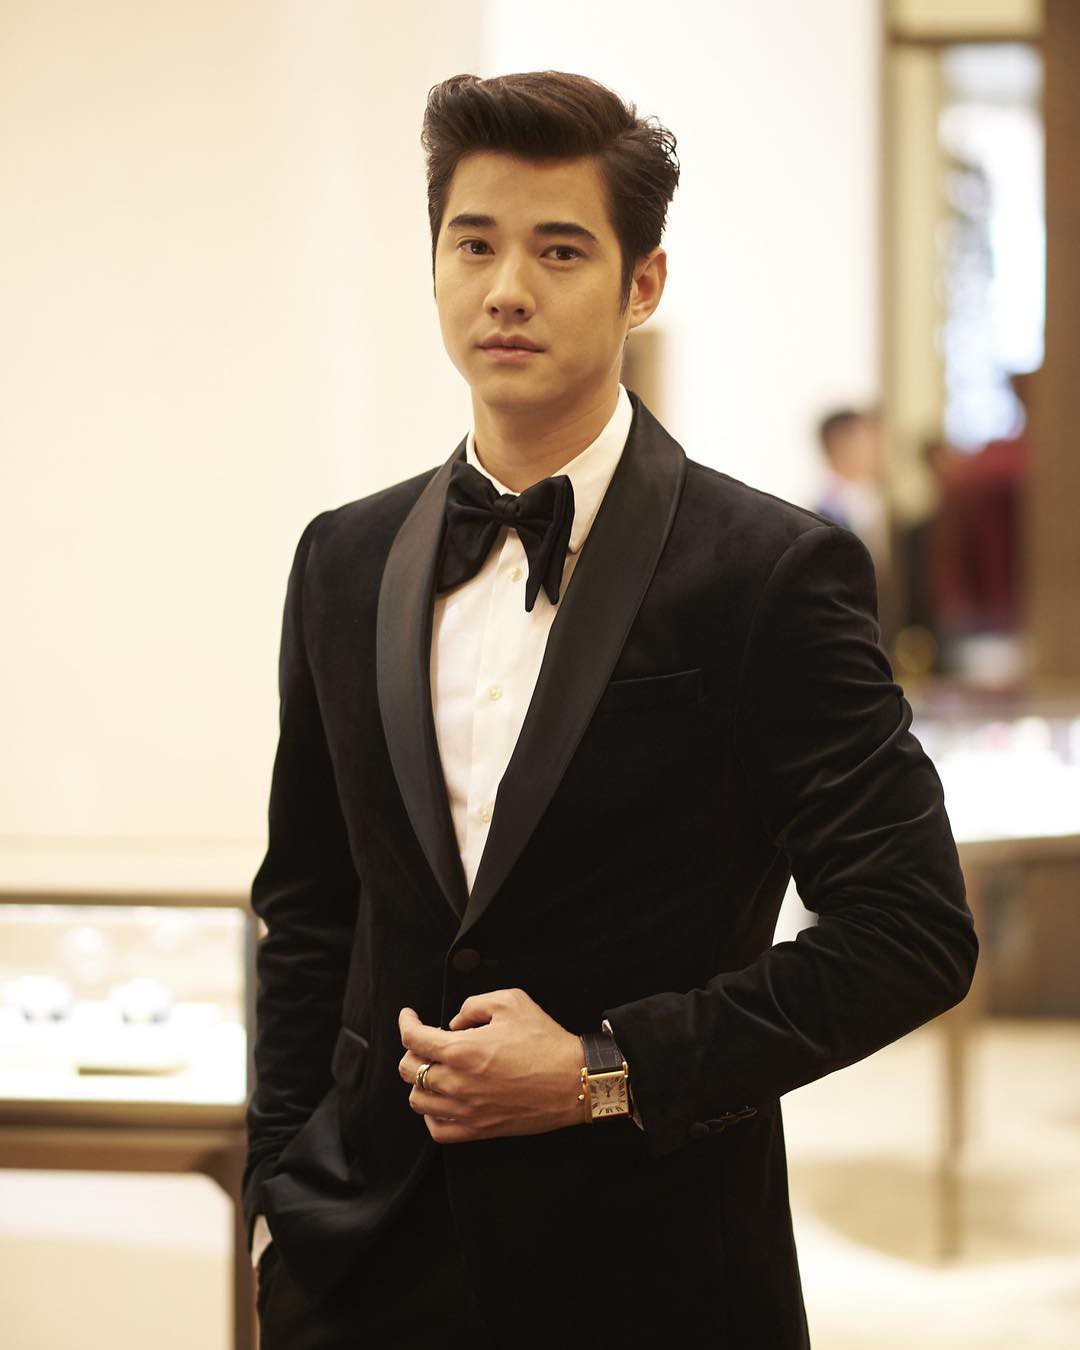 Thailand's Best Handsome Hybrid Male: Nadech, Mario All But Unexpected 1st Place - Photo 41.